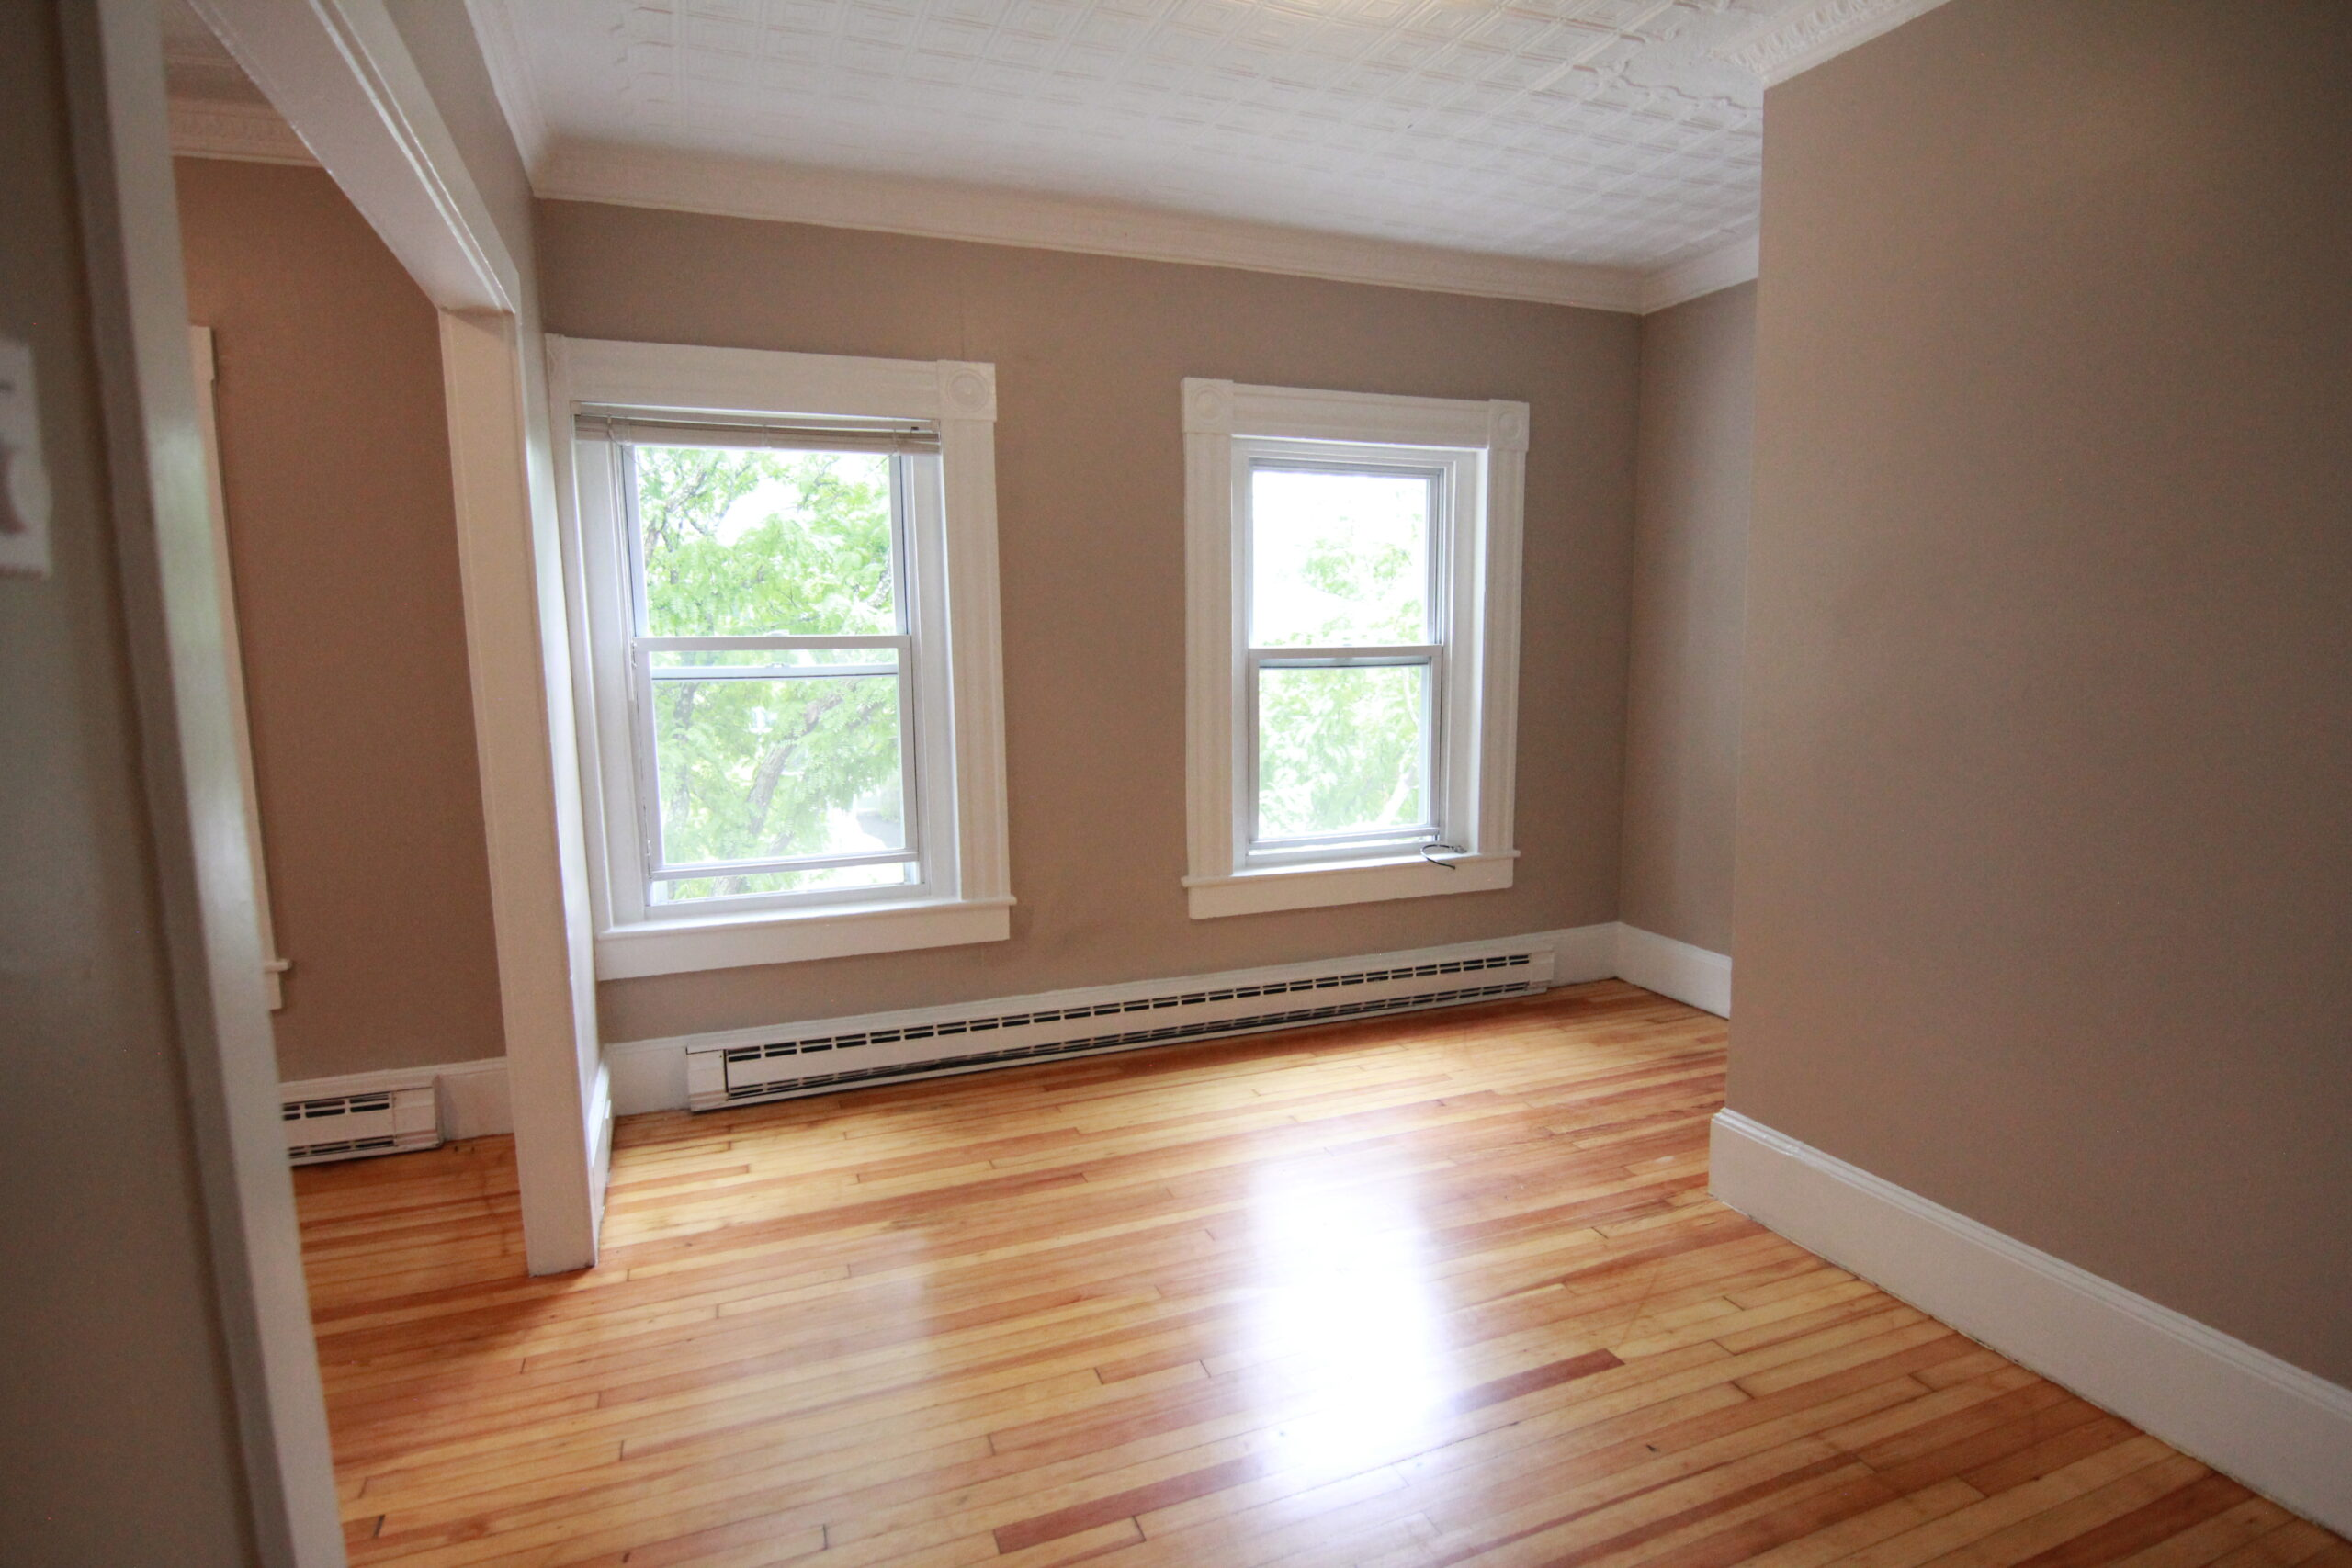 Baird Home Solutions - fresh paint molding and floors for this small apartment